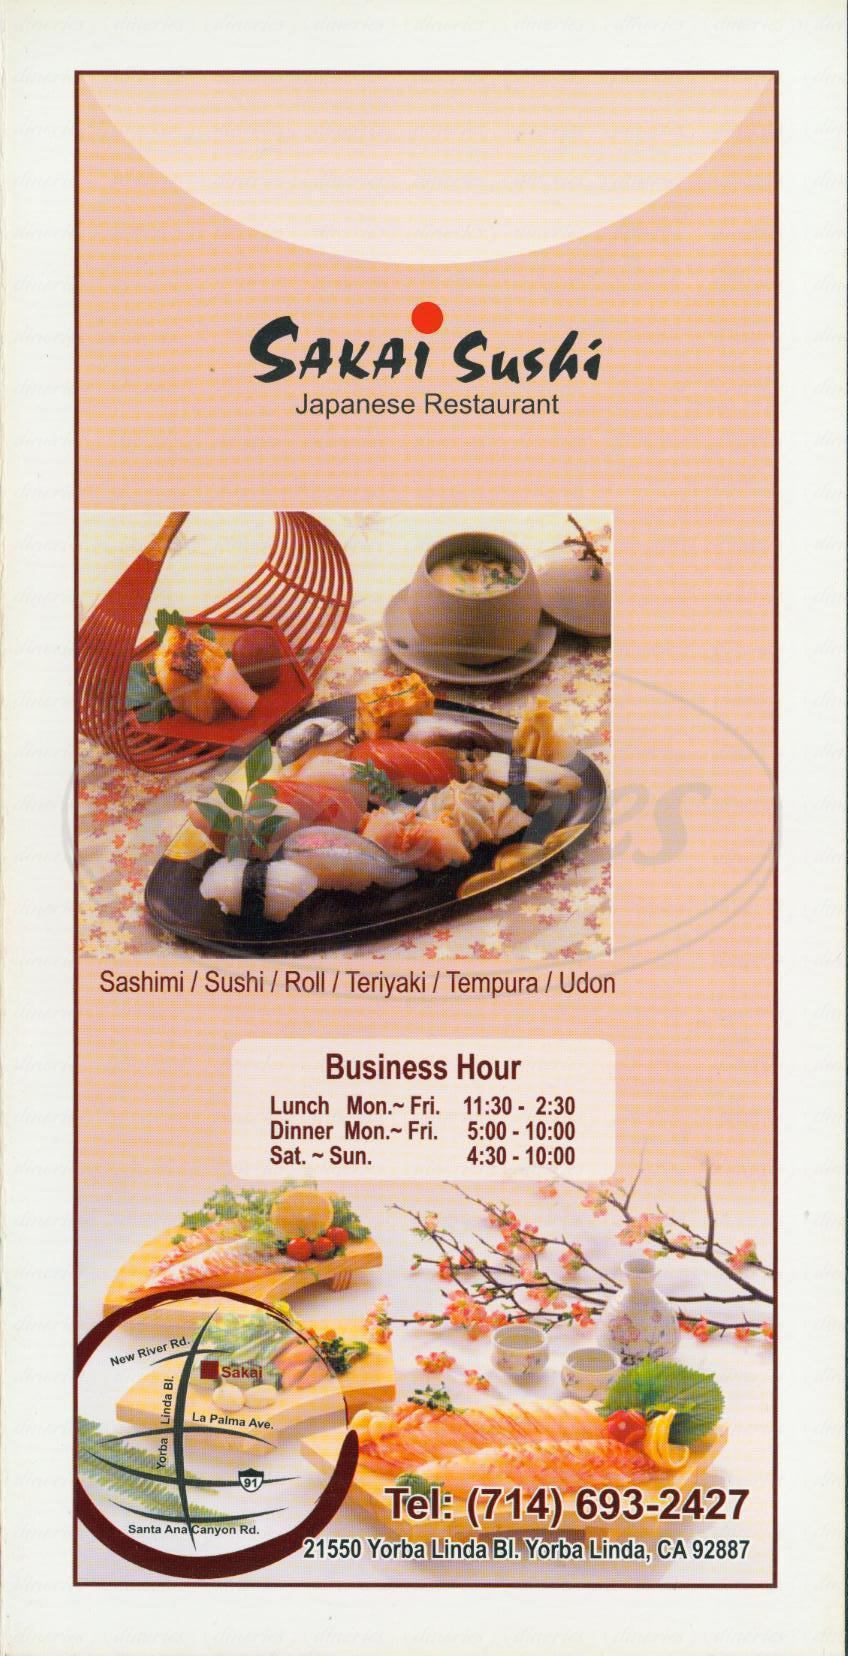 menu for Sakai Sushi